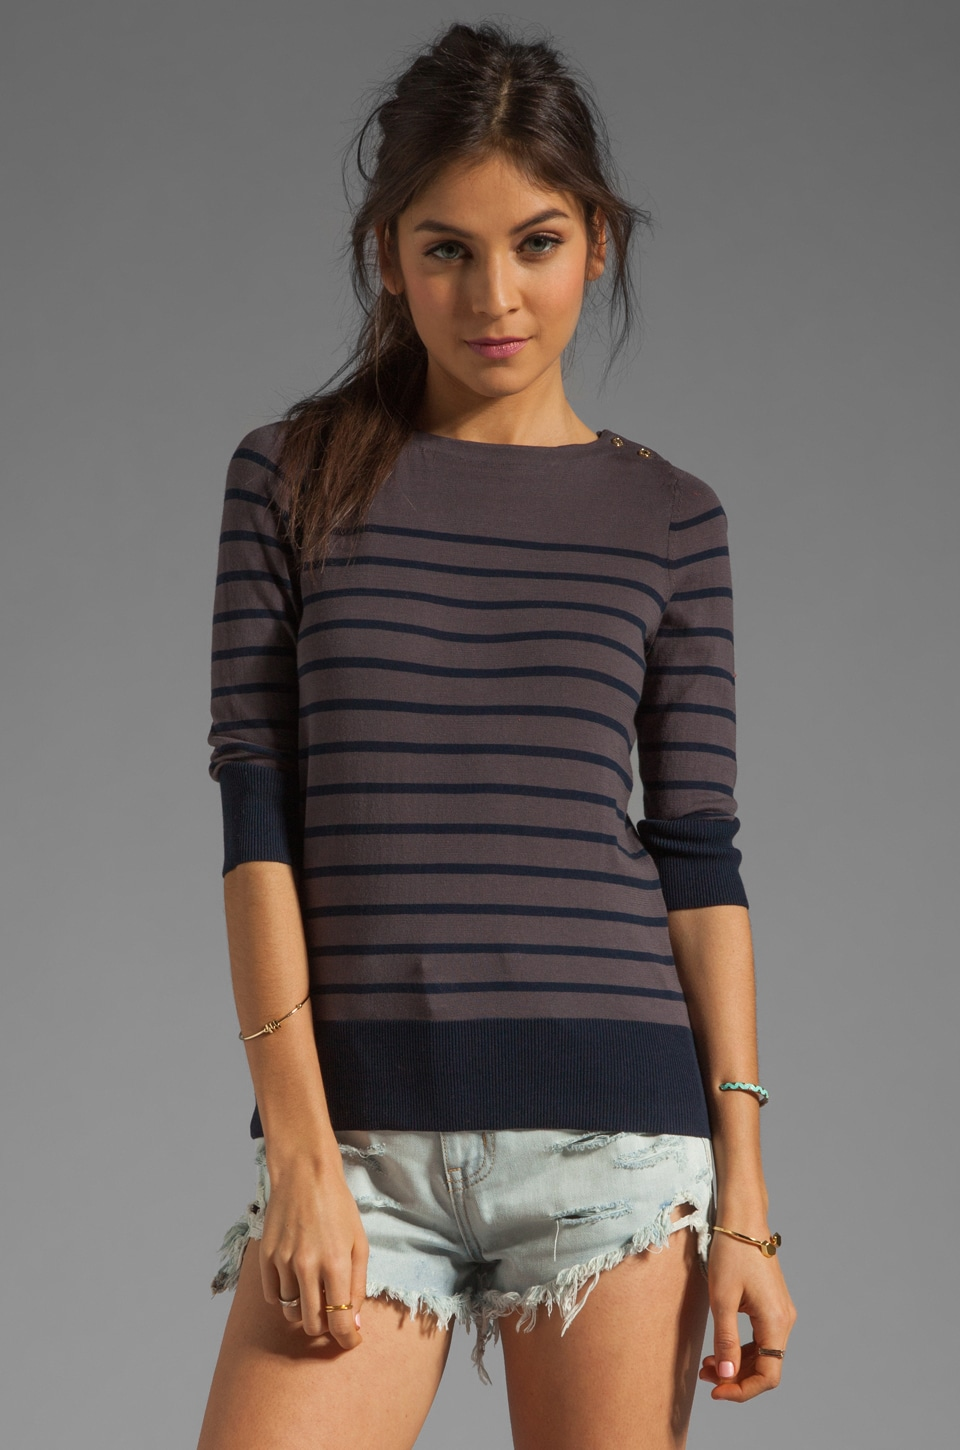 DemyLee Carrie Long Sleeve Top in Dark Grey/Navy